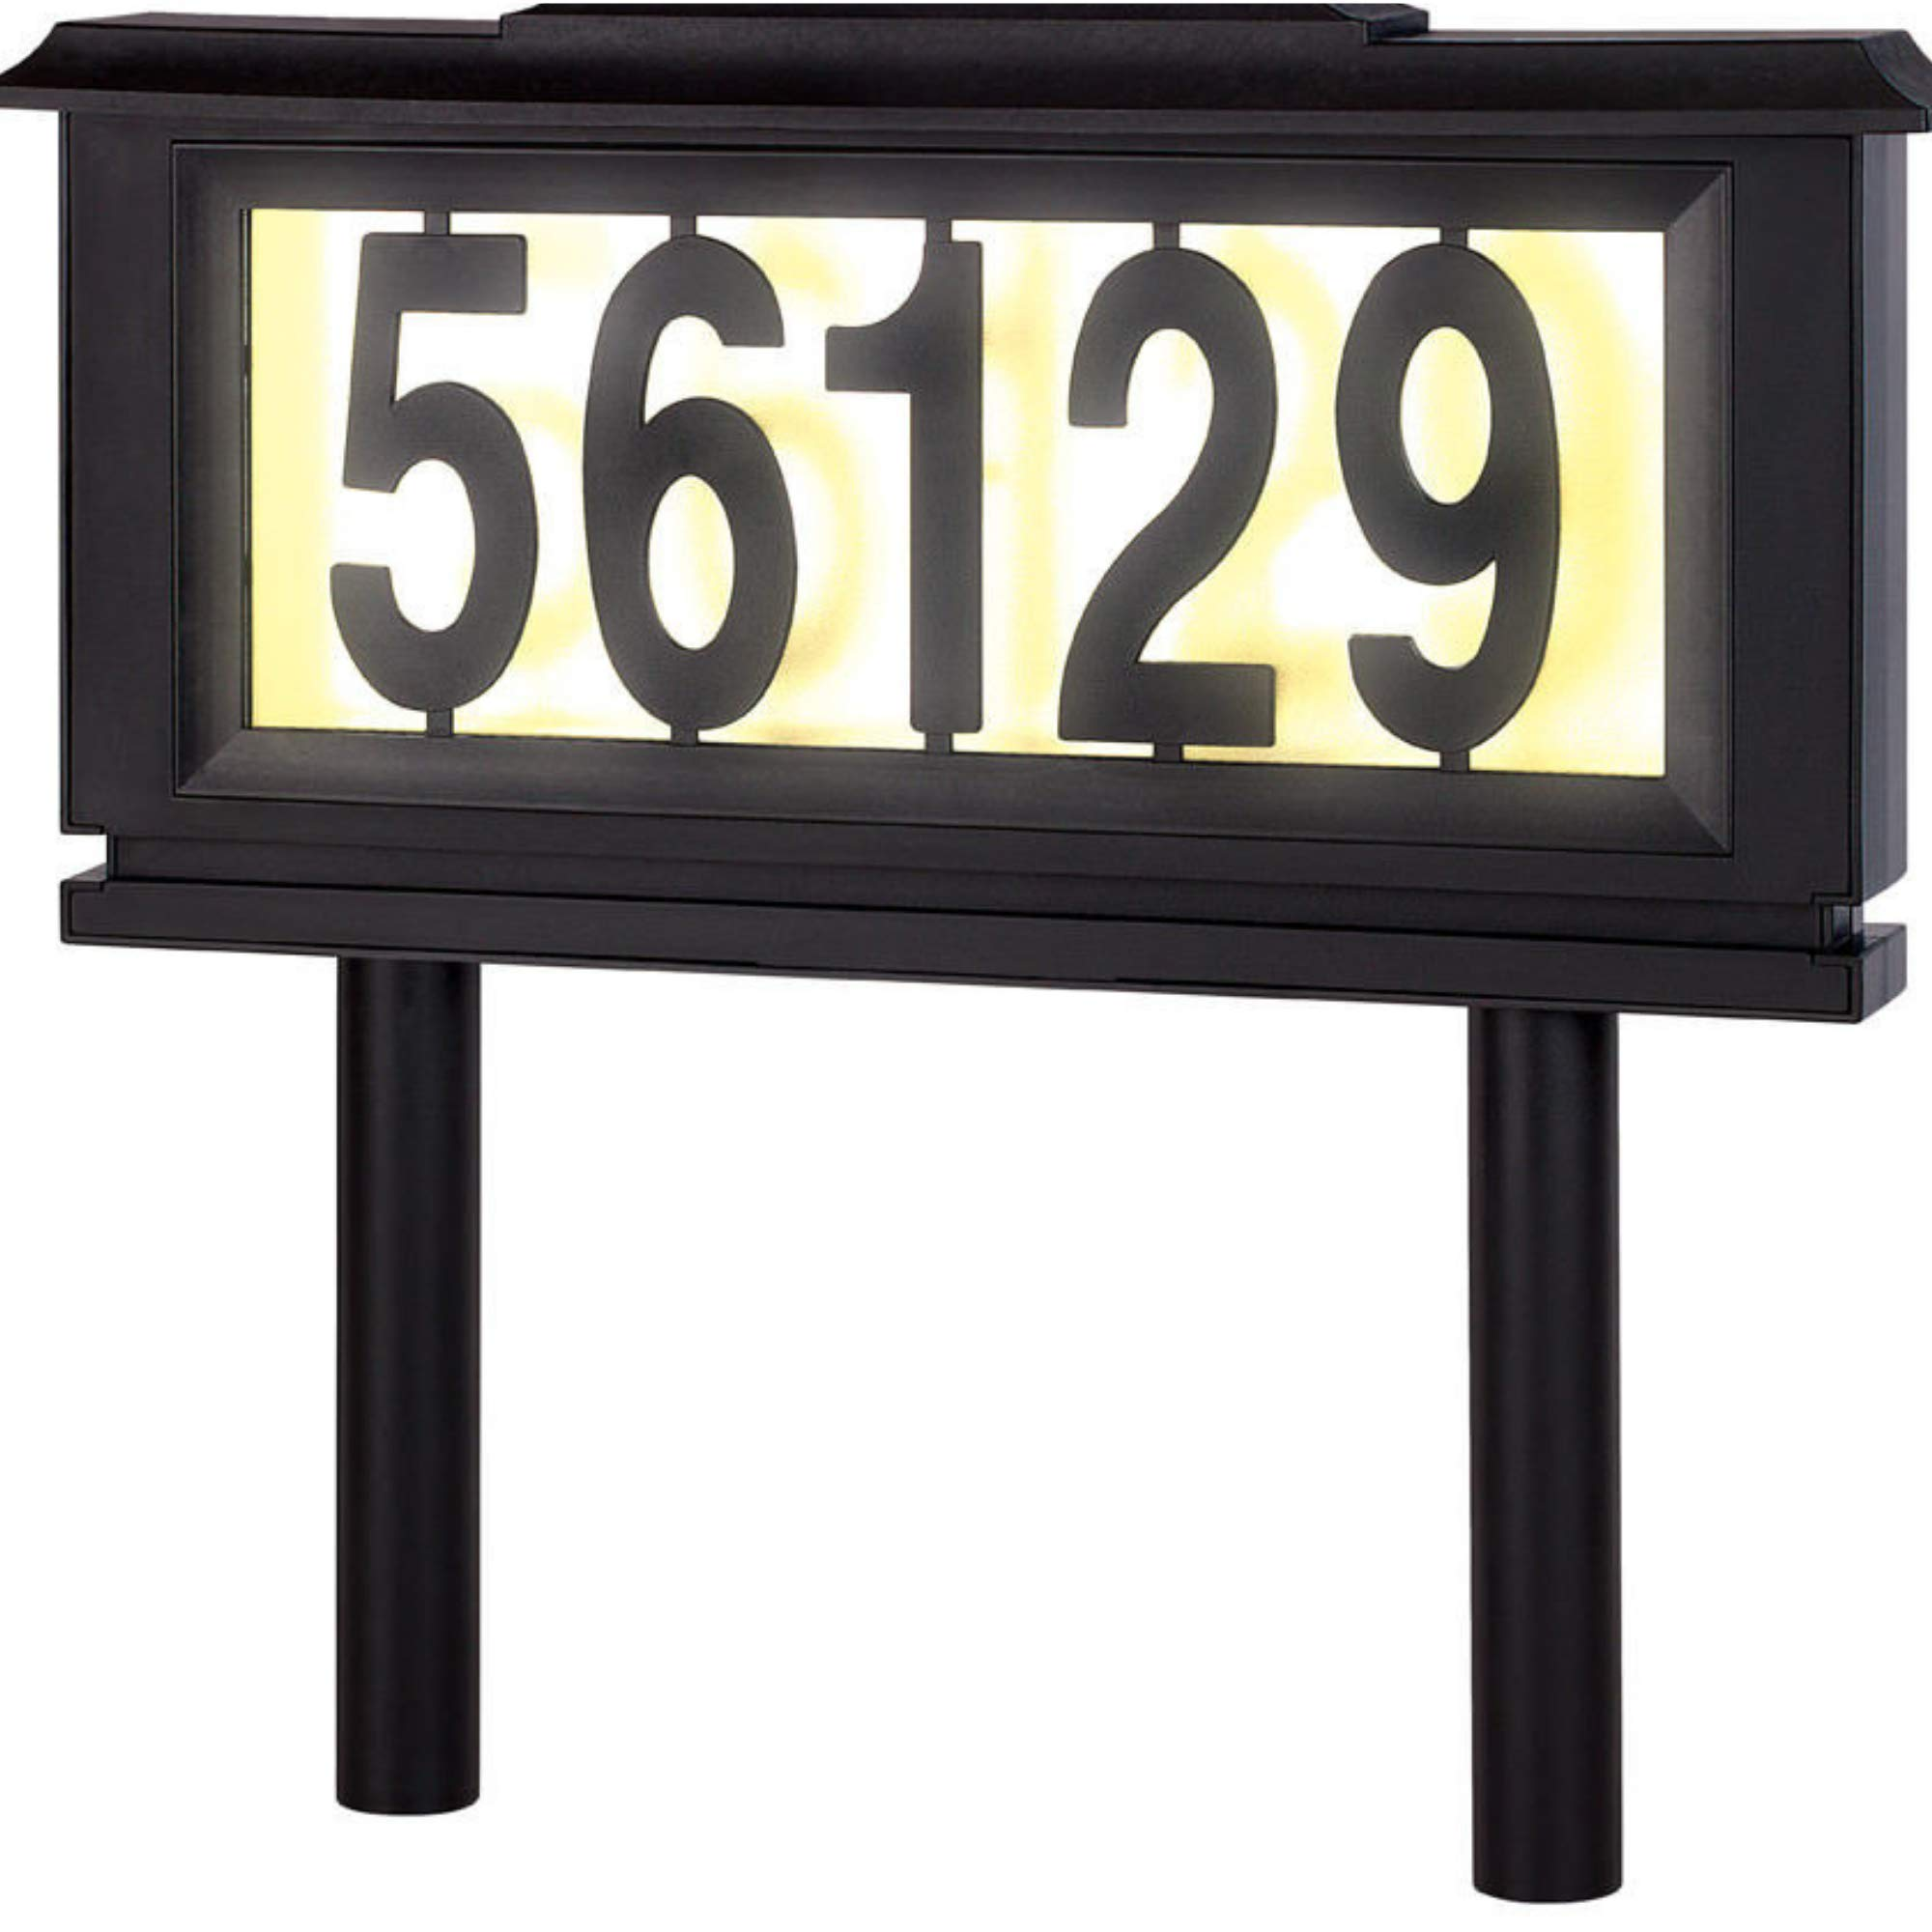 Home Ideas Solar Street Address Plaque Outdoor Led Light Signs, House Mailbox Numbers Reflective Sign for Home or Yard - Auto ON at Night – Off at Daylight Black